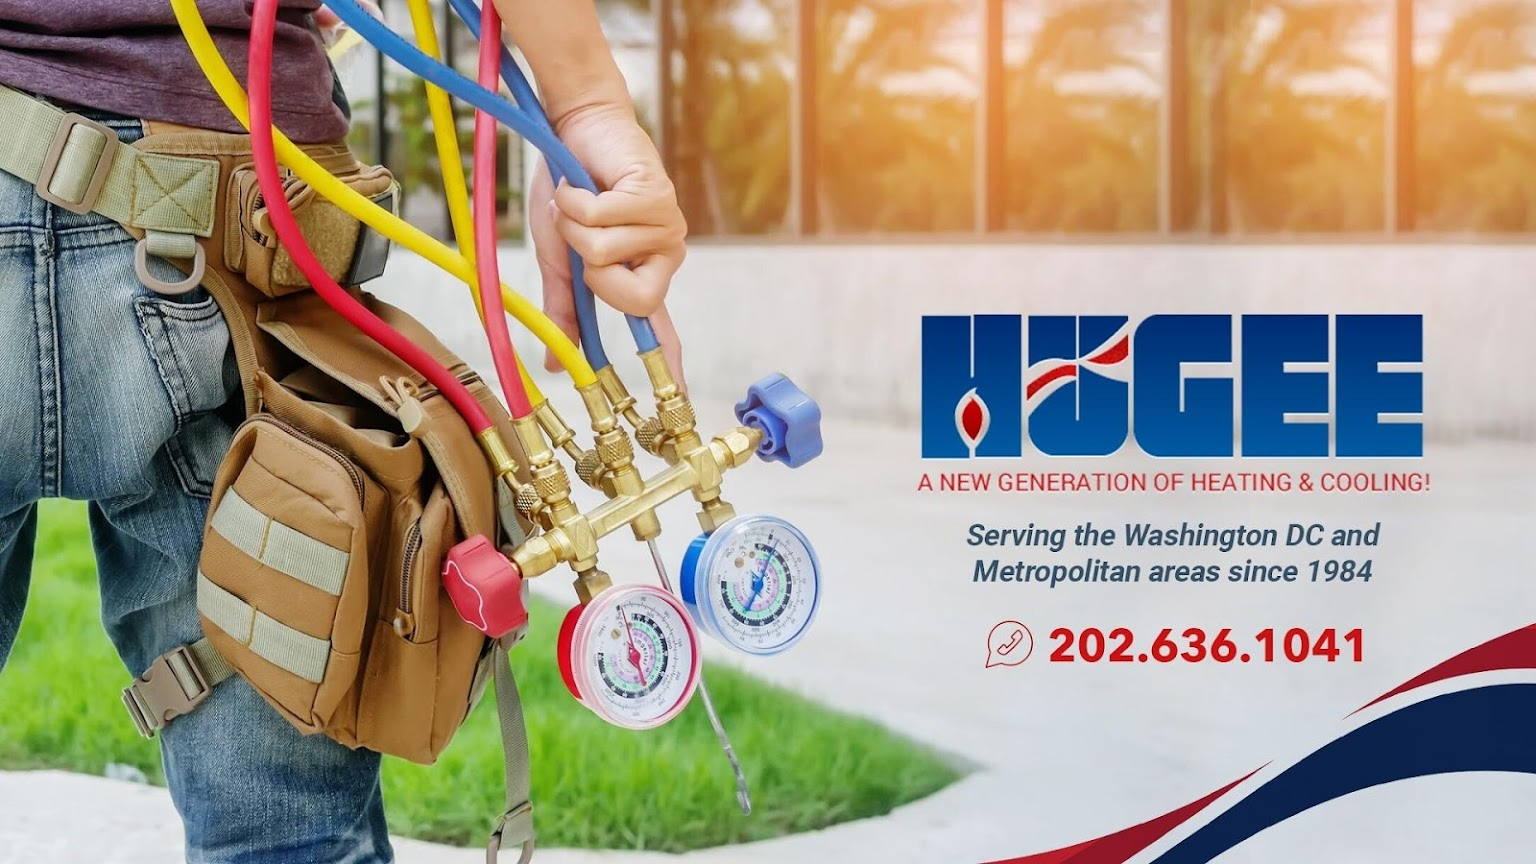 Hugee A New Generation of Heating and Cooling - Washington, DC